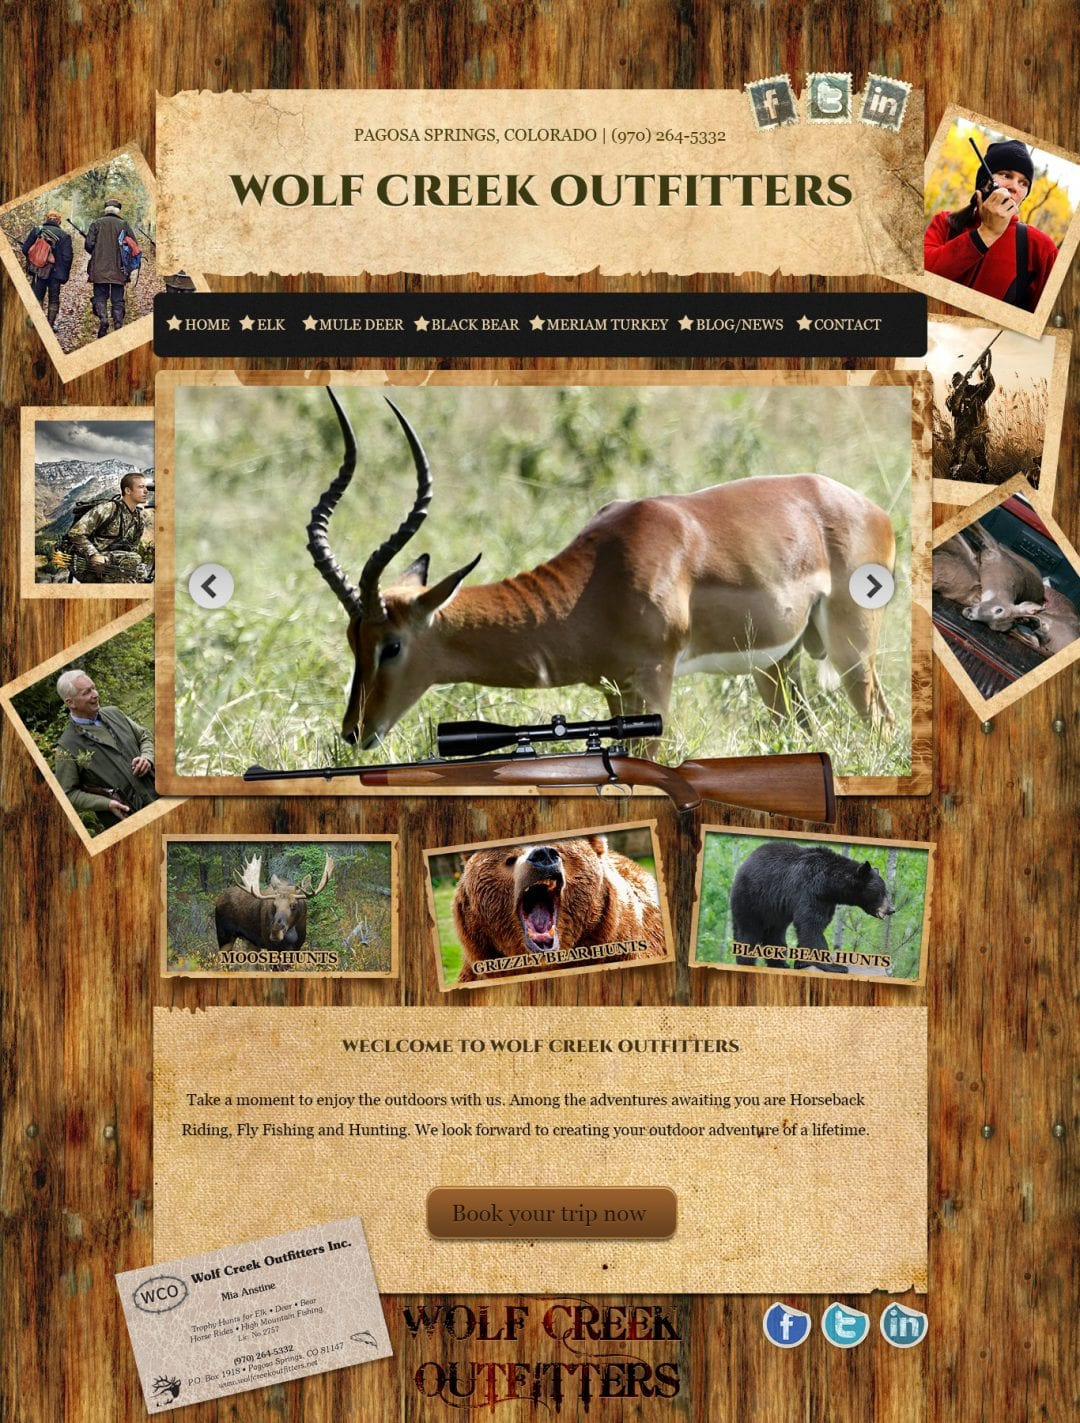 Wolf Creek Outfitters